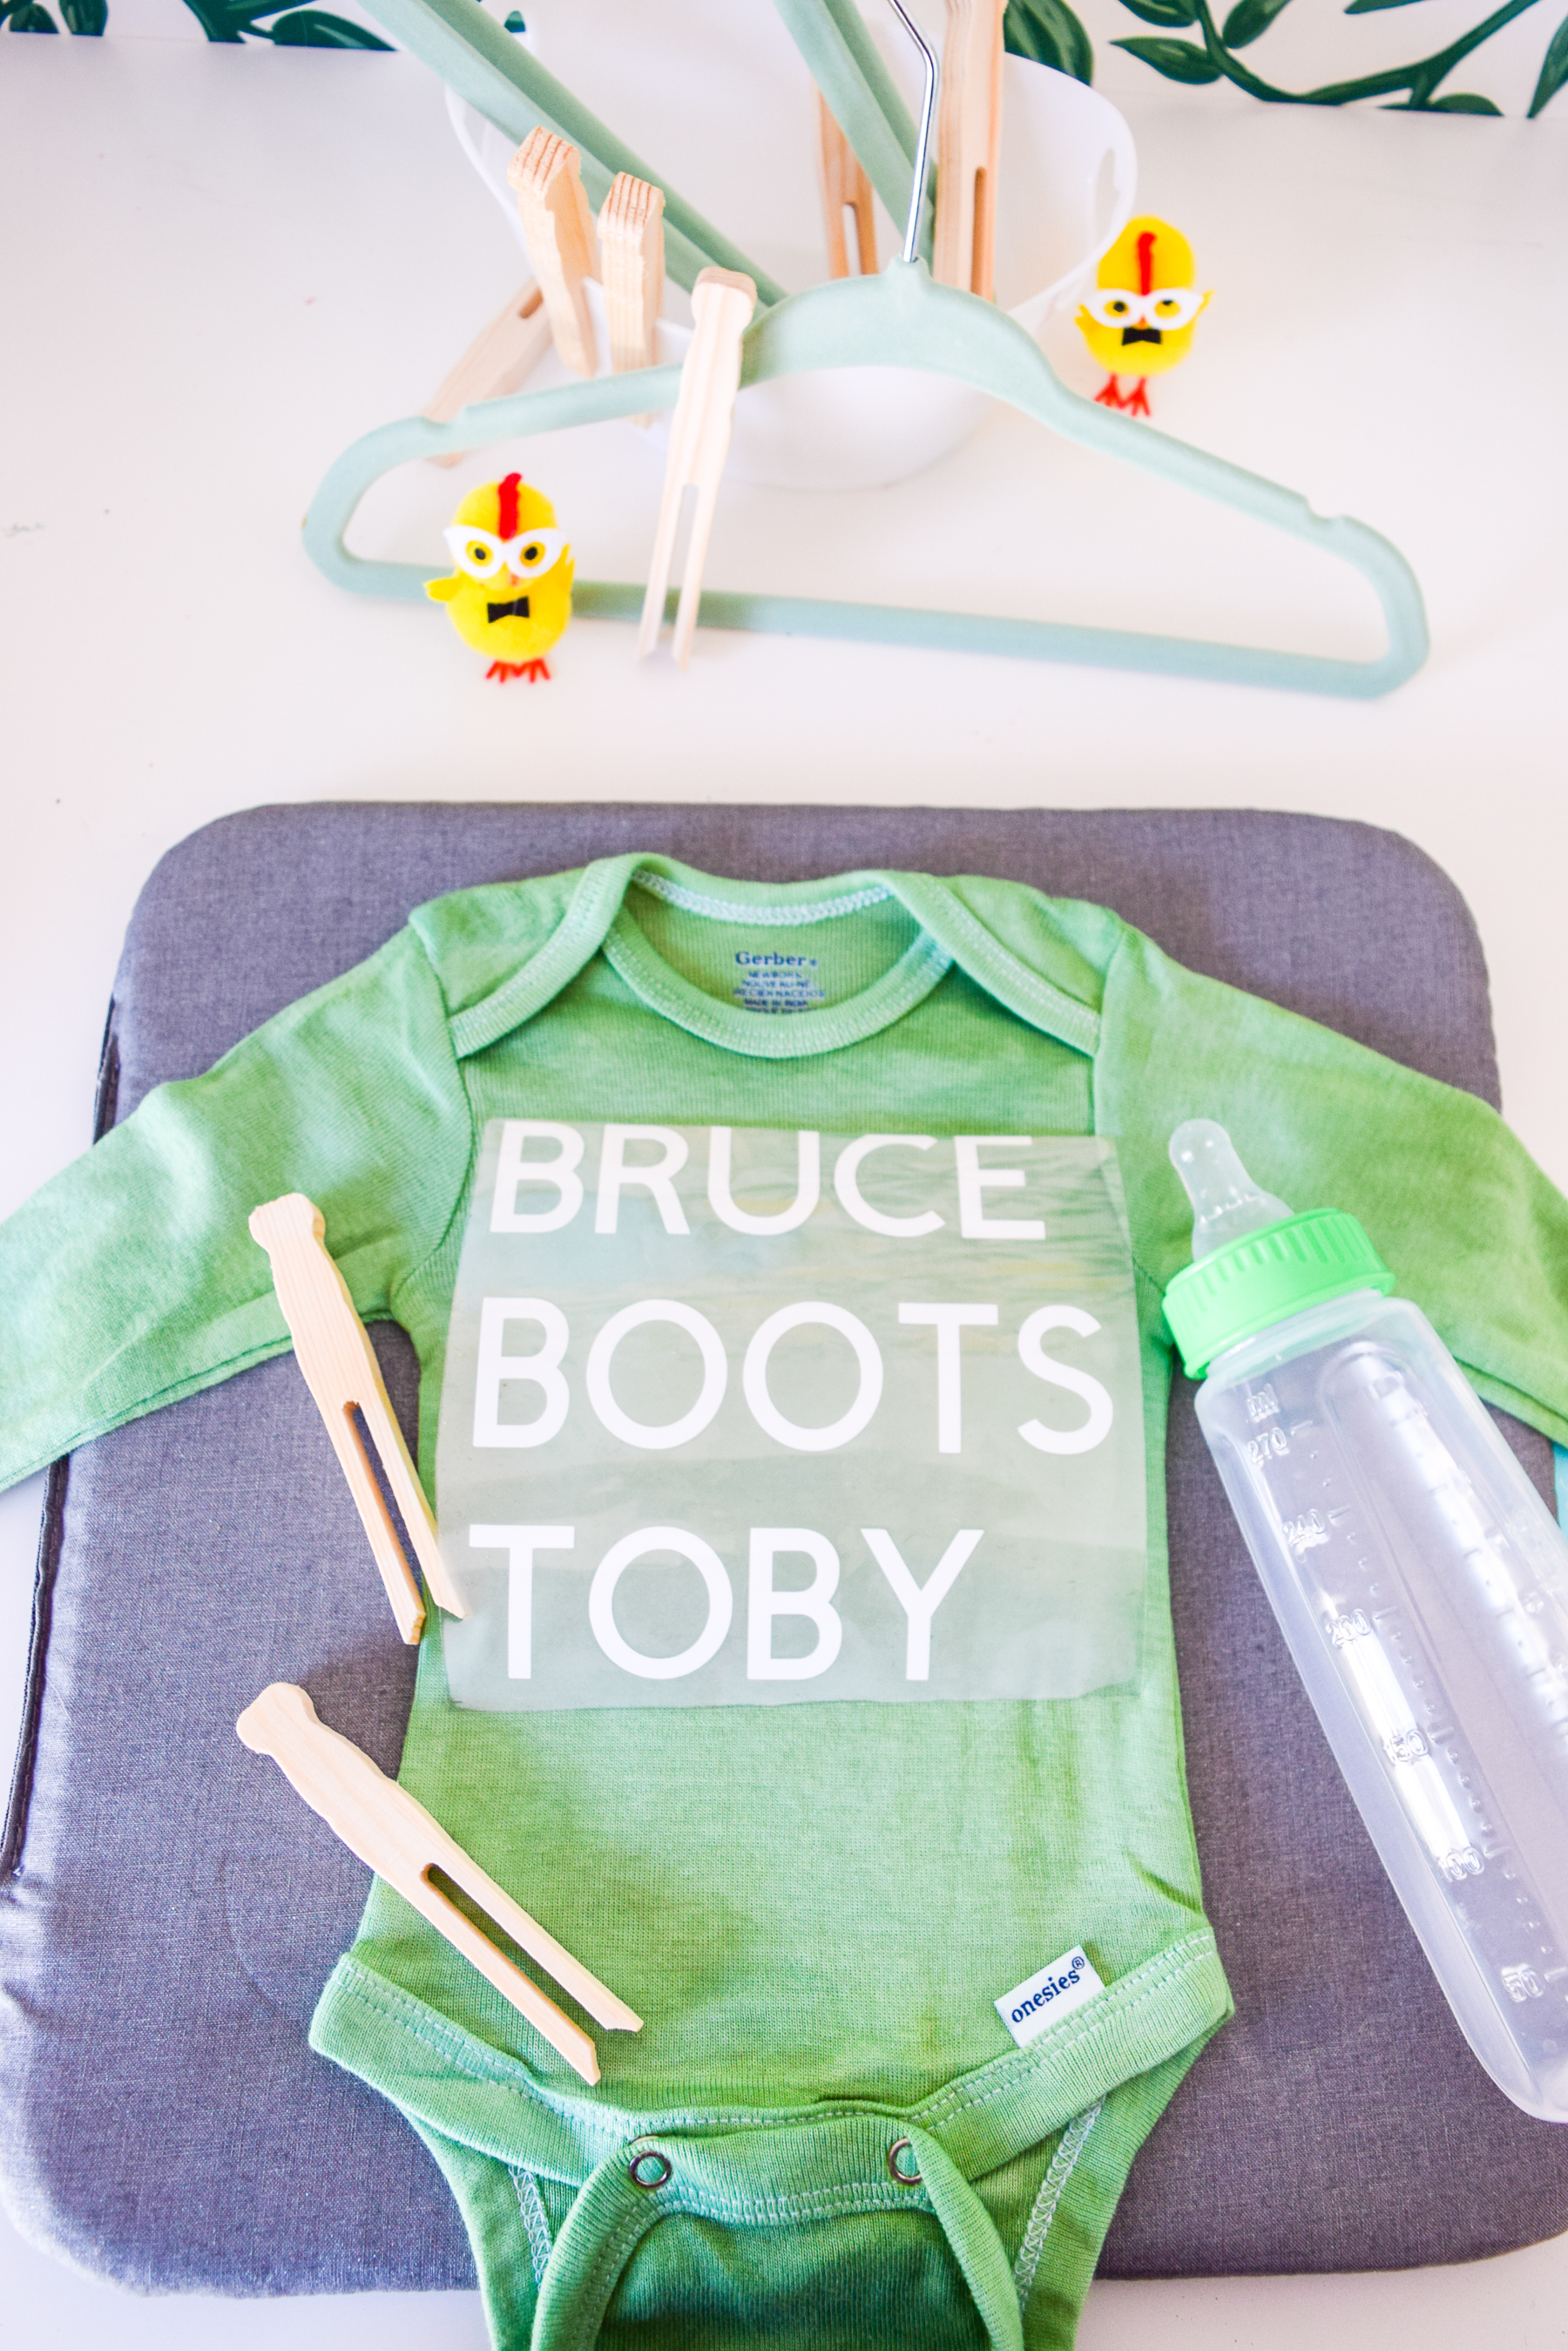 custom dyed baby onesies are how you get around the fact that everything in stores is either blue or pink. Take back the cool with customized baby clothes.